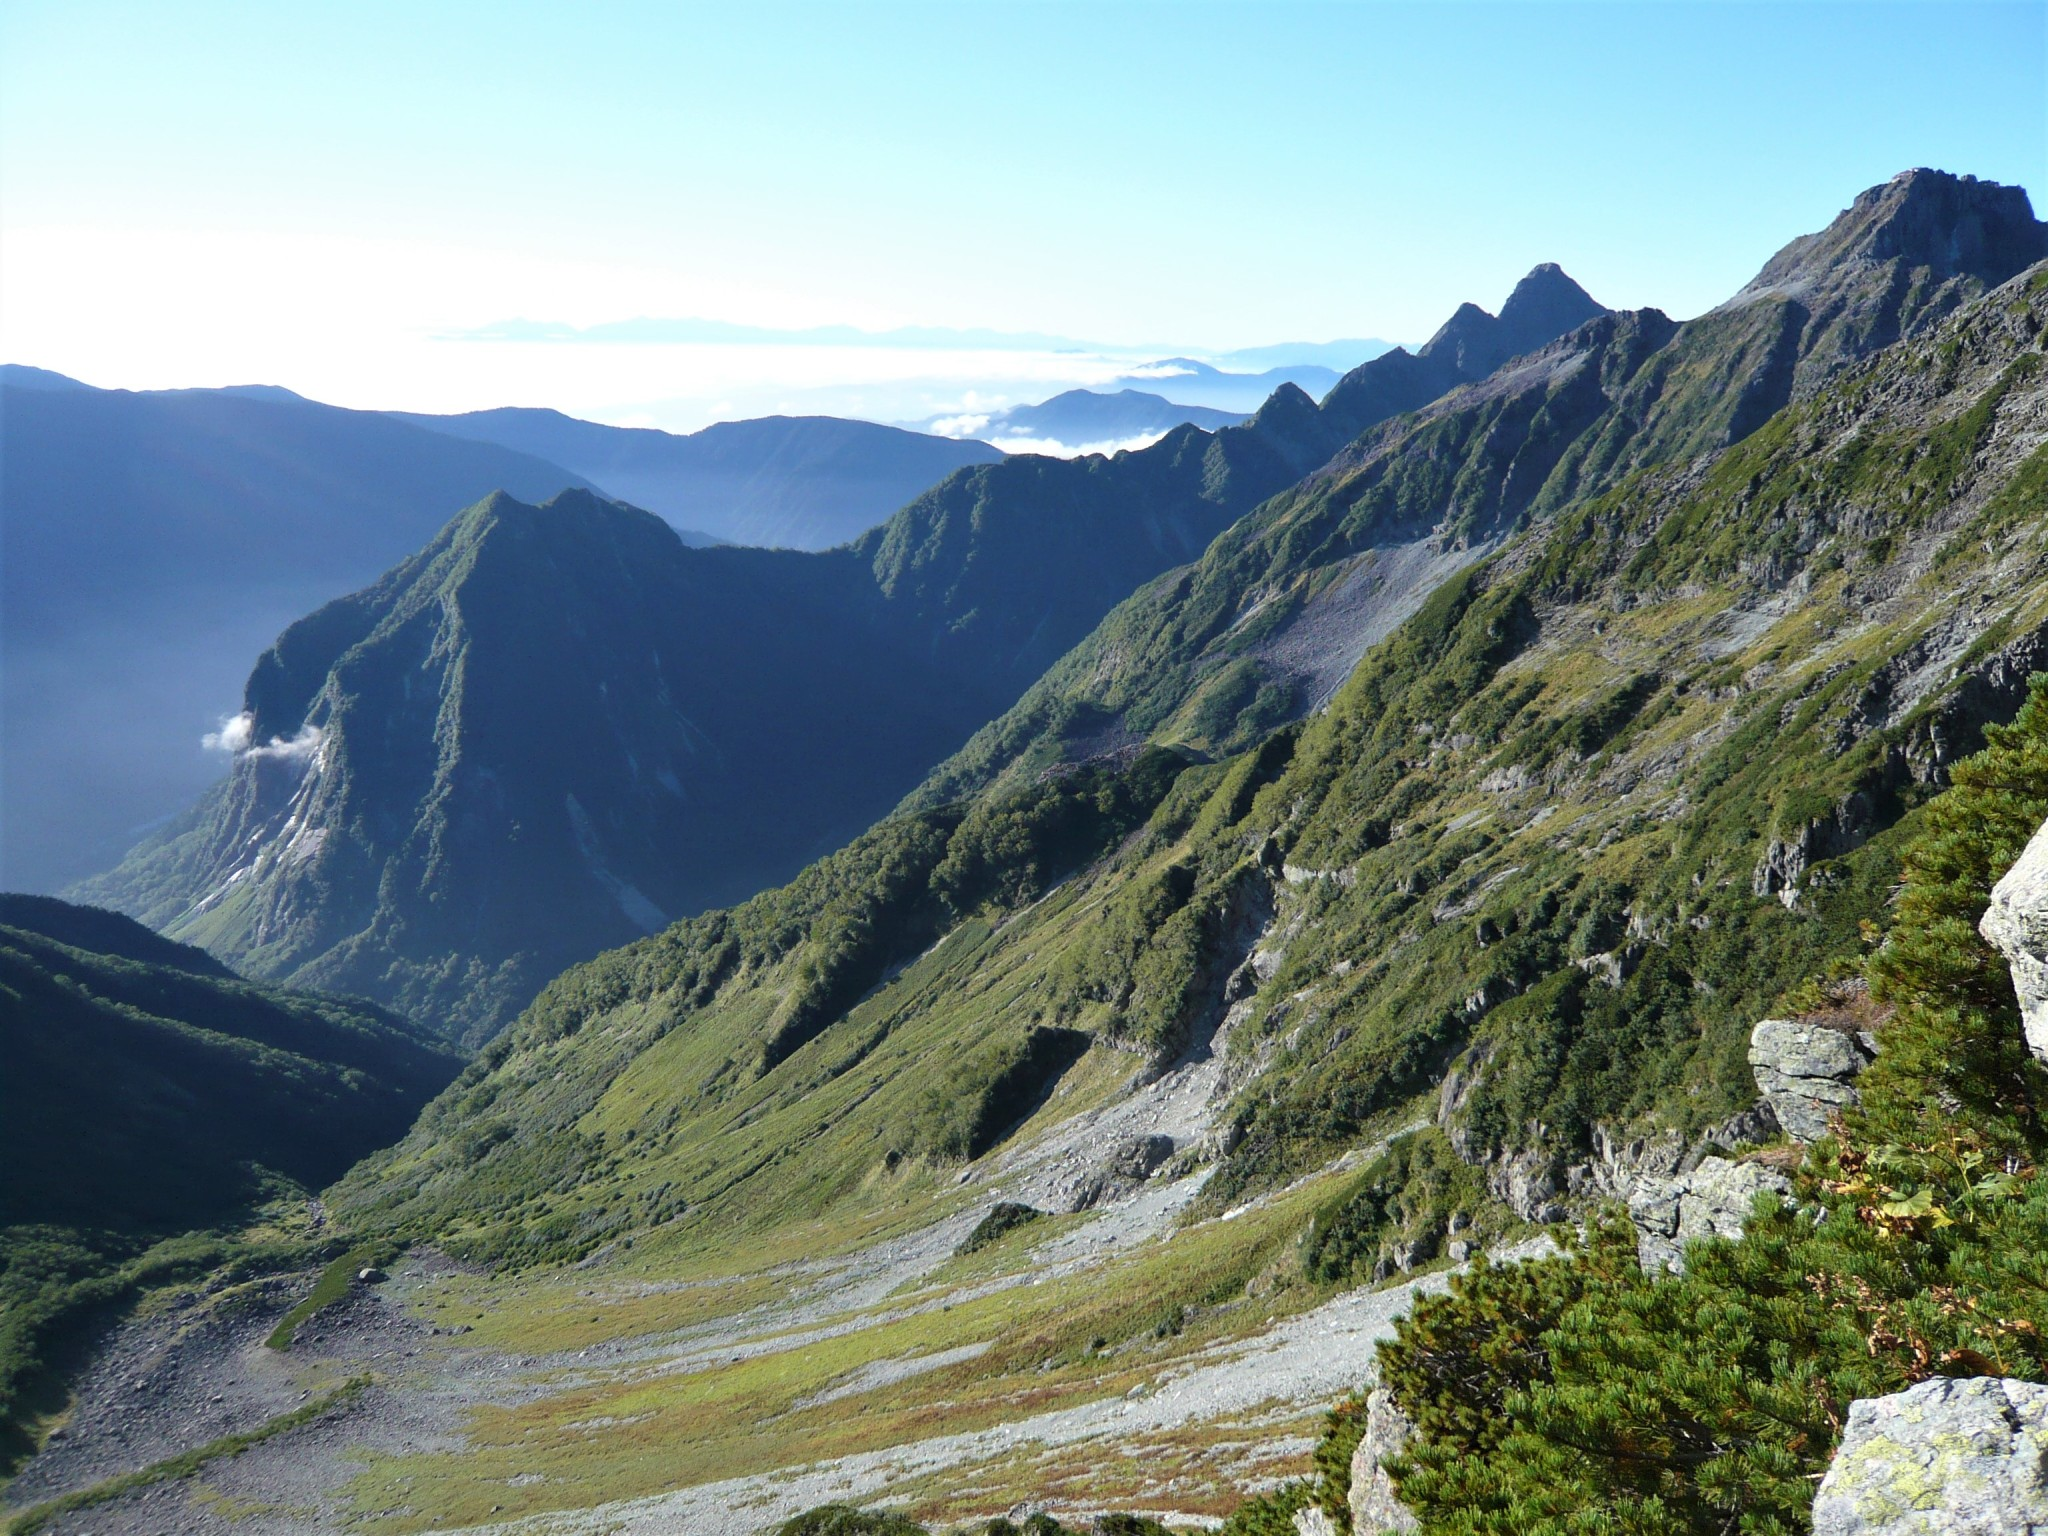 A panoramic view of a jagged mountain  ridgeline and green valley in the Japan Alps.